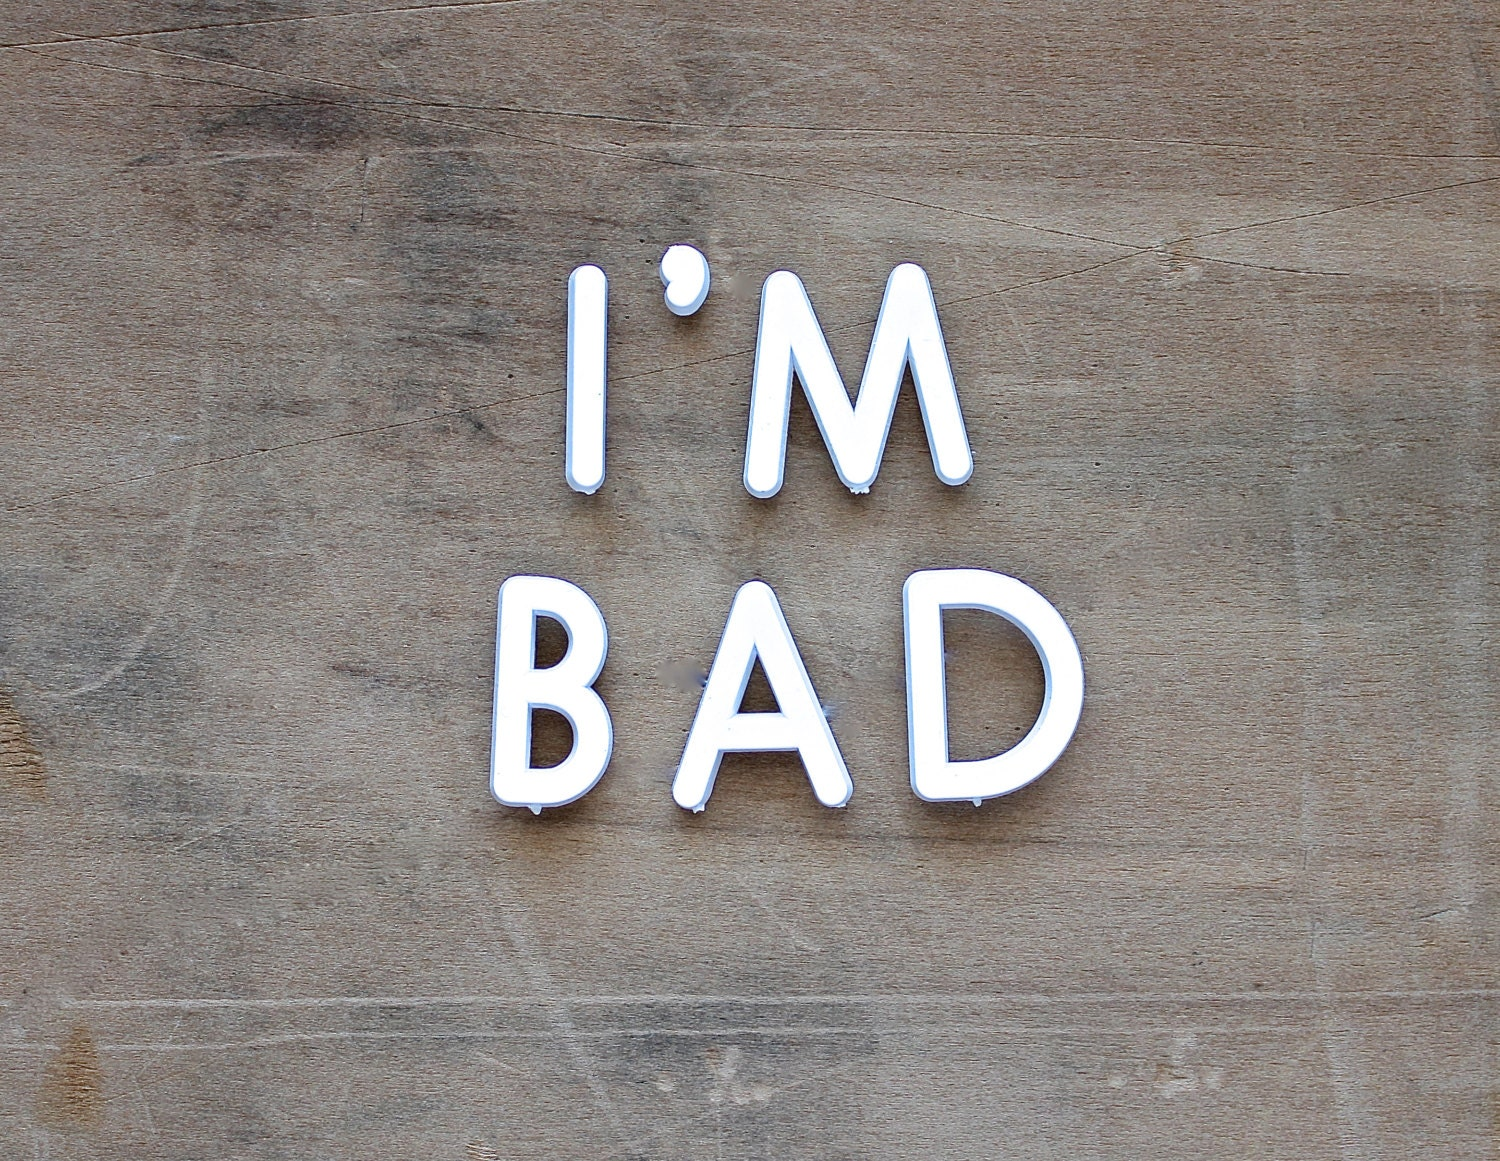 I M Bad Vintage Push Pin Letters Sign Rustic White By Becaruns